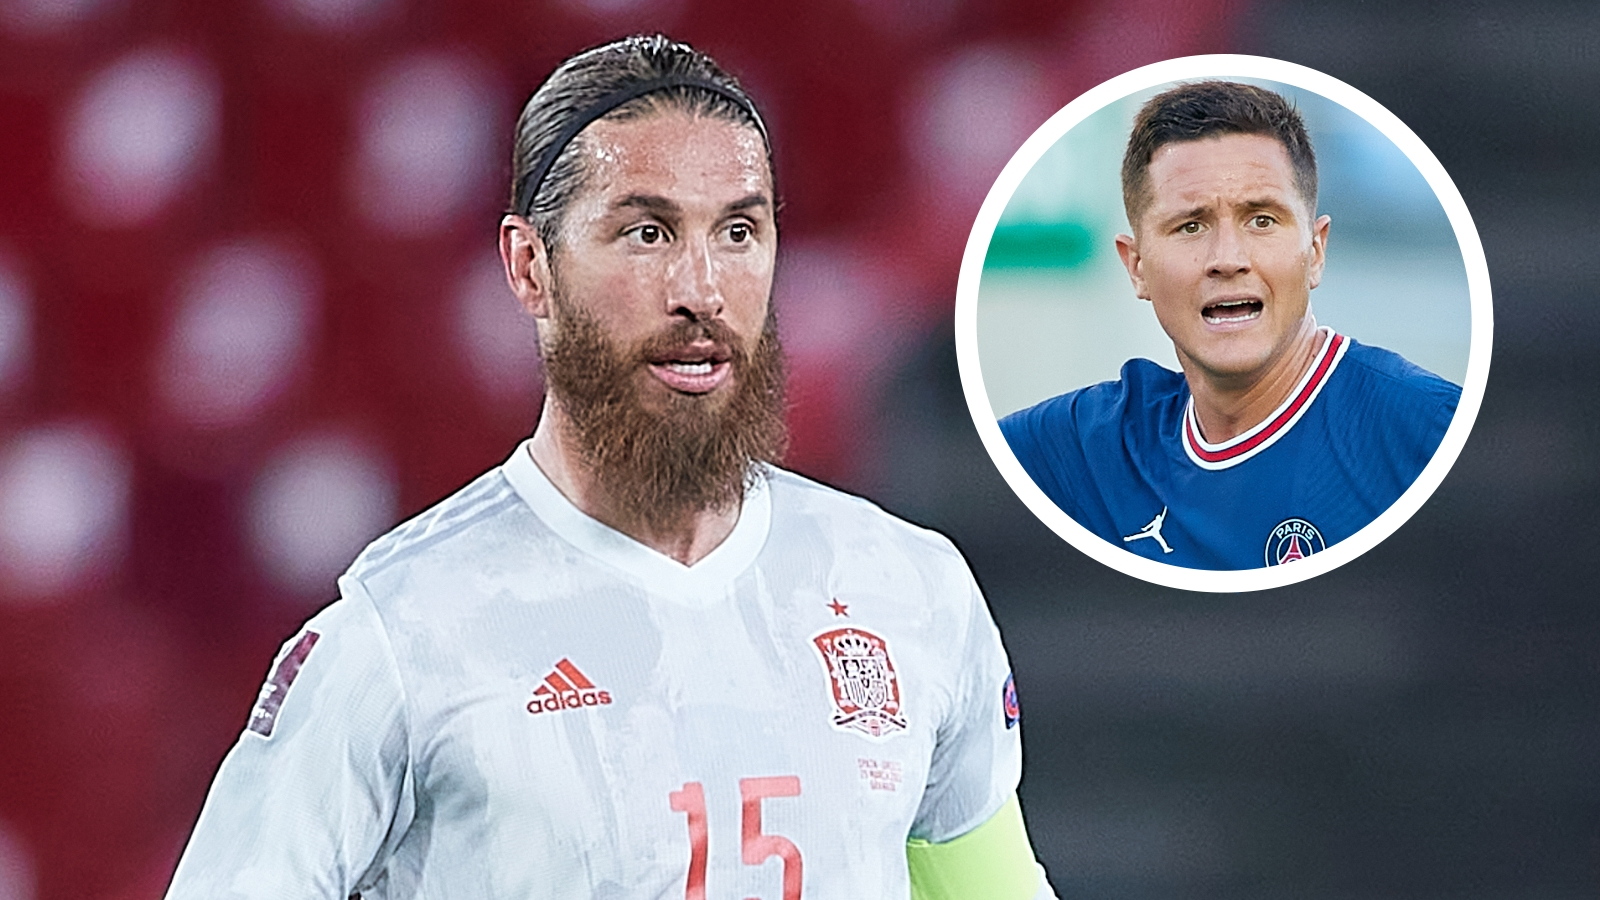 'A legend and a leader with brutal hunger' - Herrera hails PSG signing of Real Madrid icon Ramos